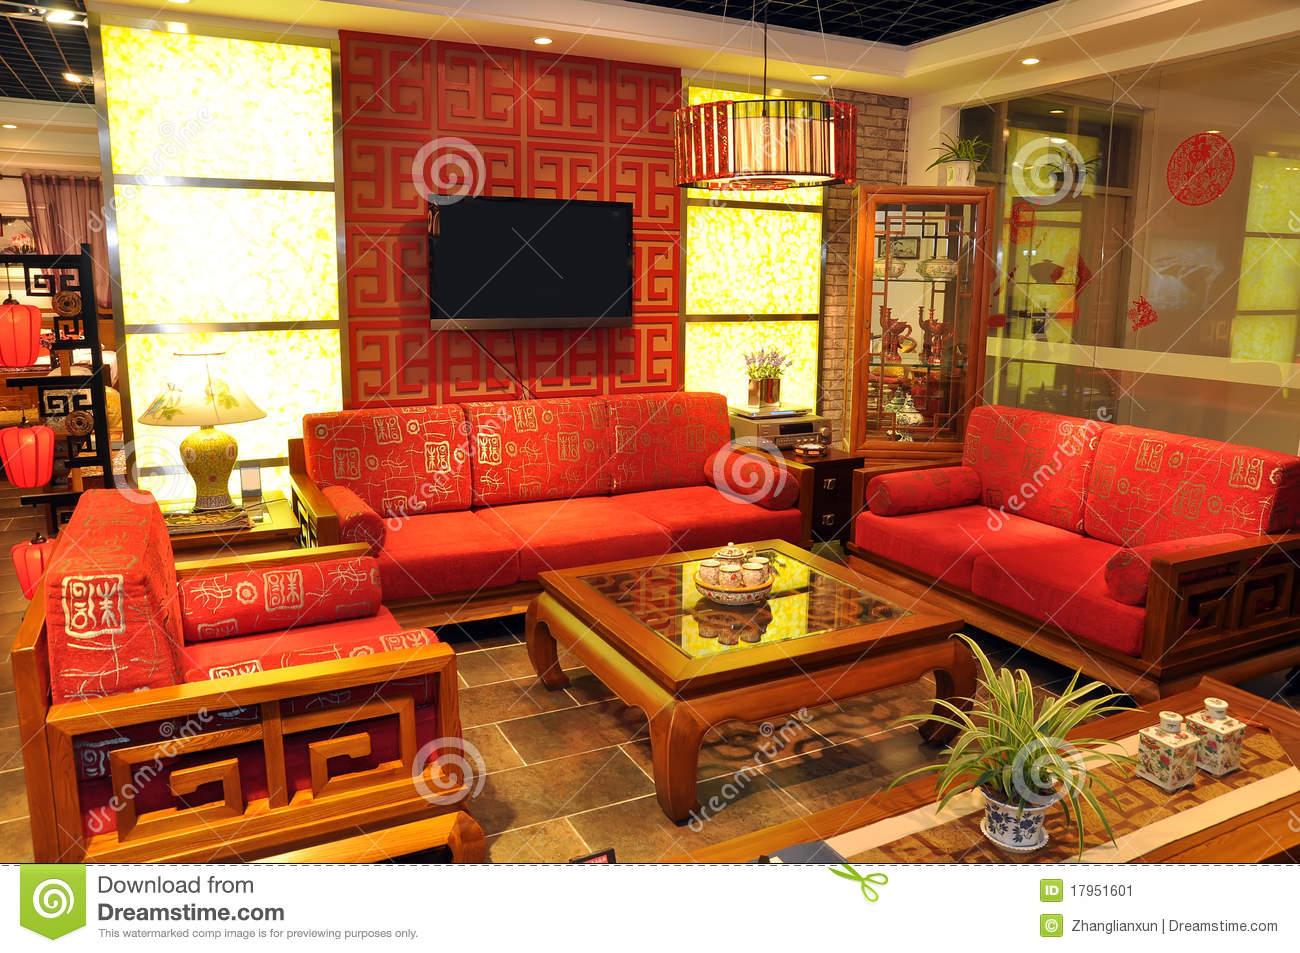 armchair pillow small drop leaf table and chairs chinese traditional furniture stock image - image: 17951601